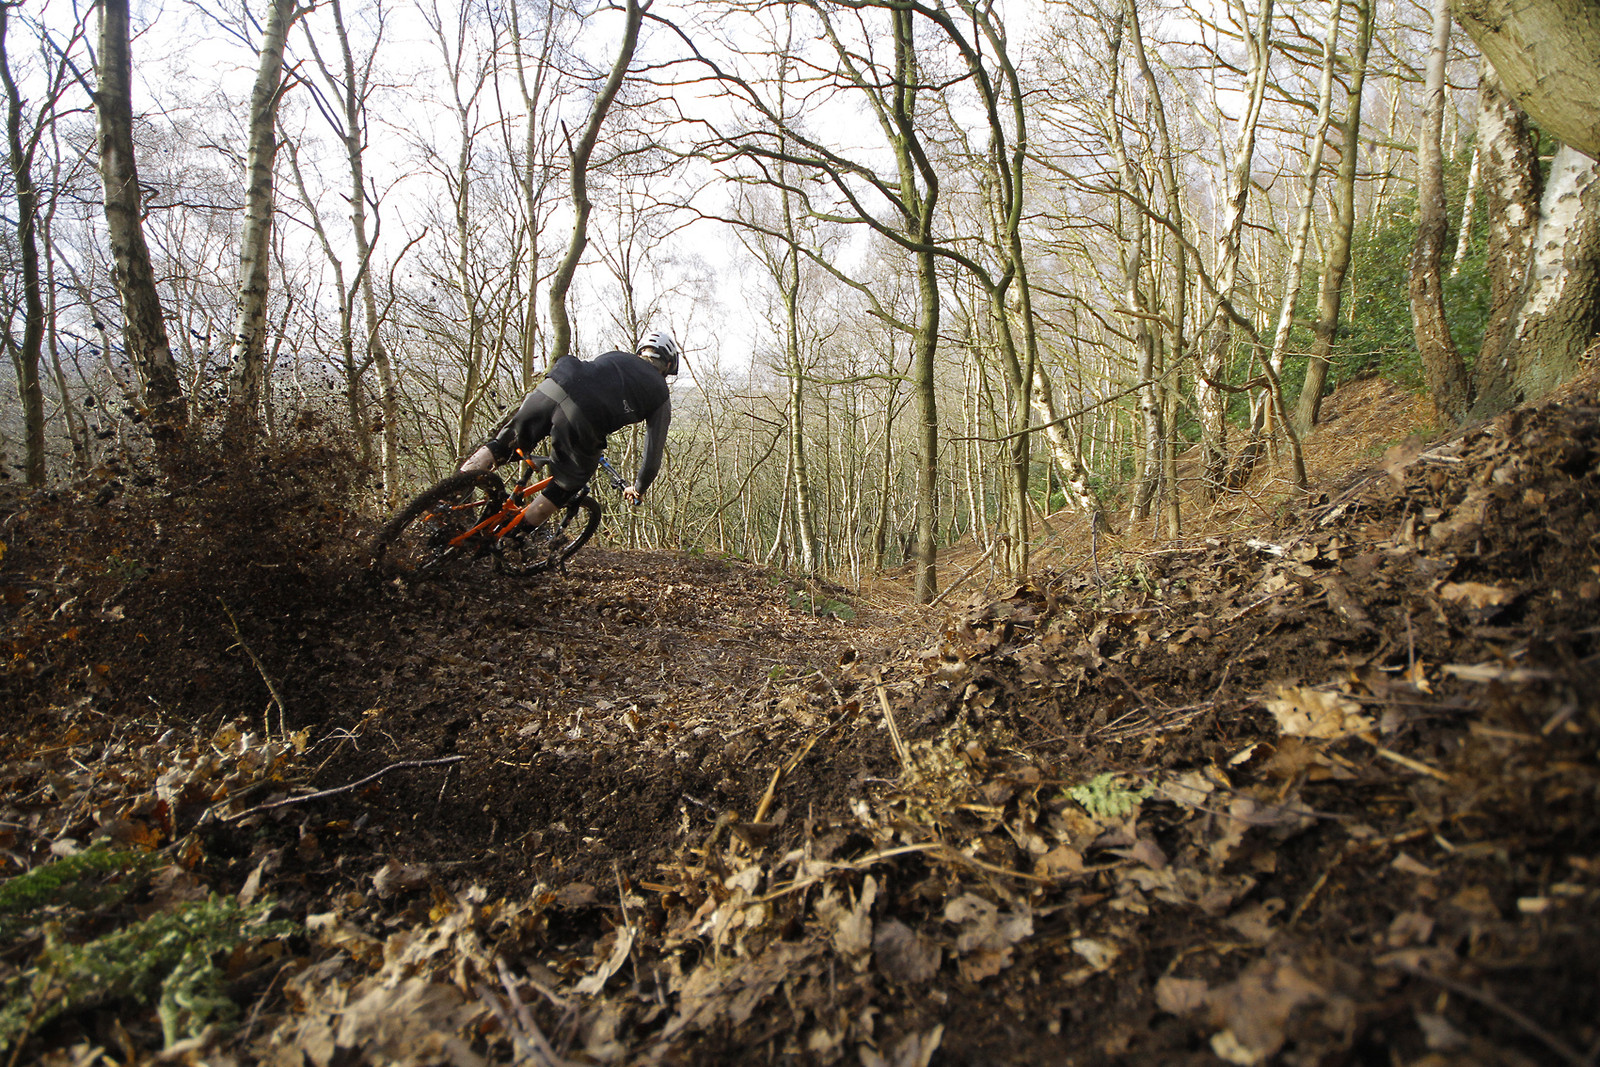 The perfect catch bank - CaldwellVisuals - Mountain Biking Pictures - Vital MTB